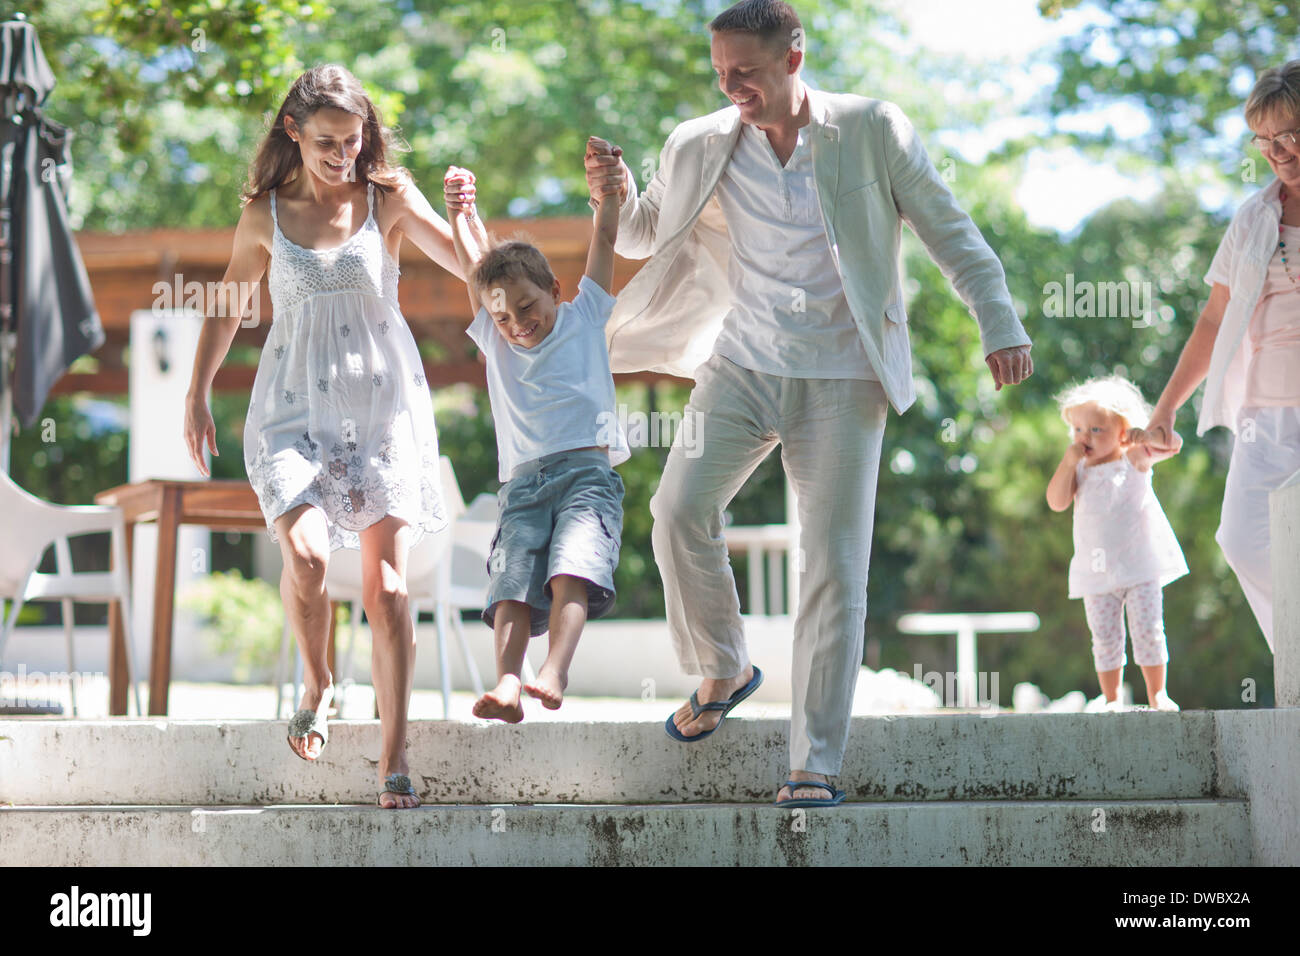 Parents lifting son over steps - Stock Image